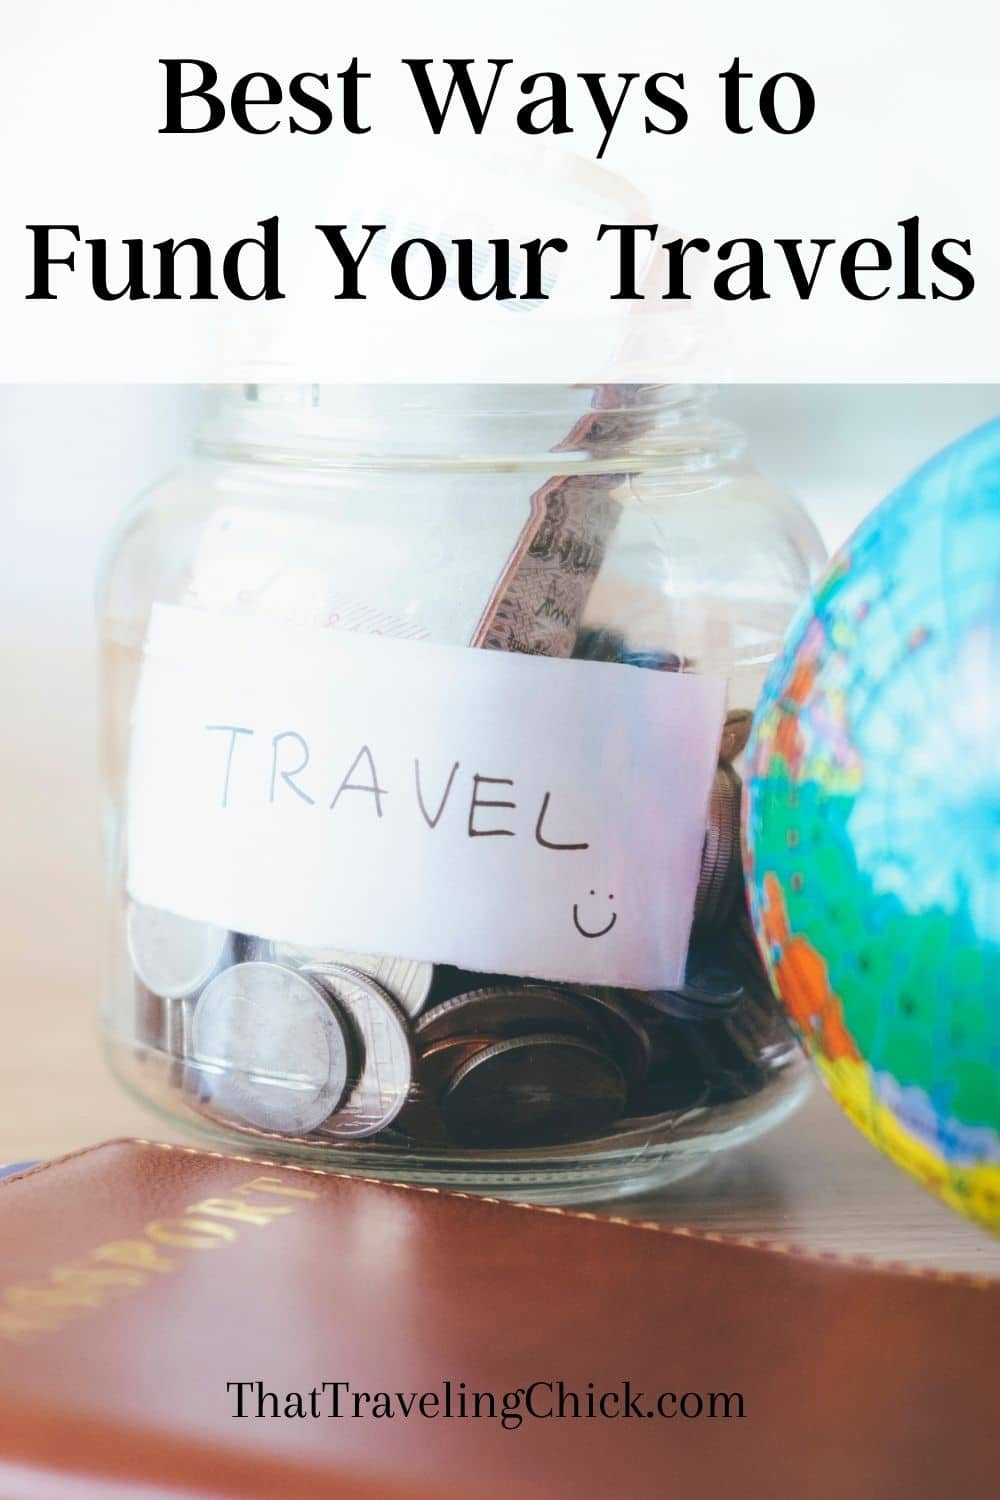 Helping you find the best ways to fund your travels.